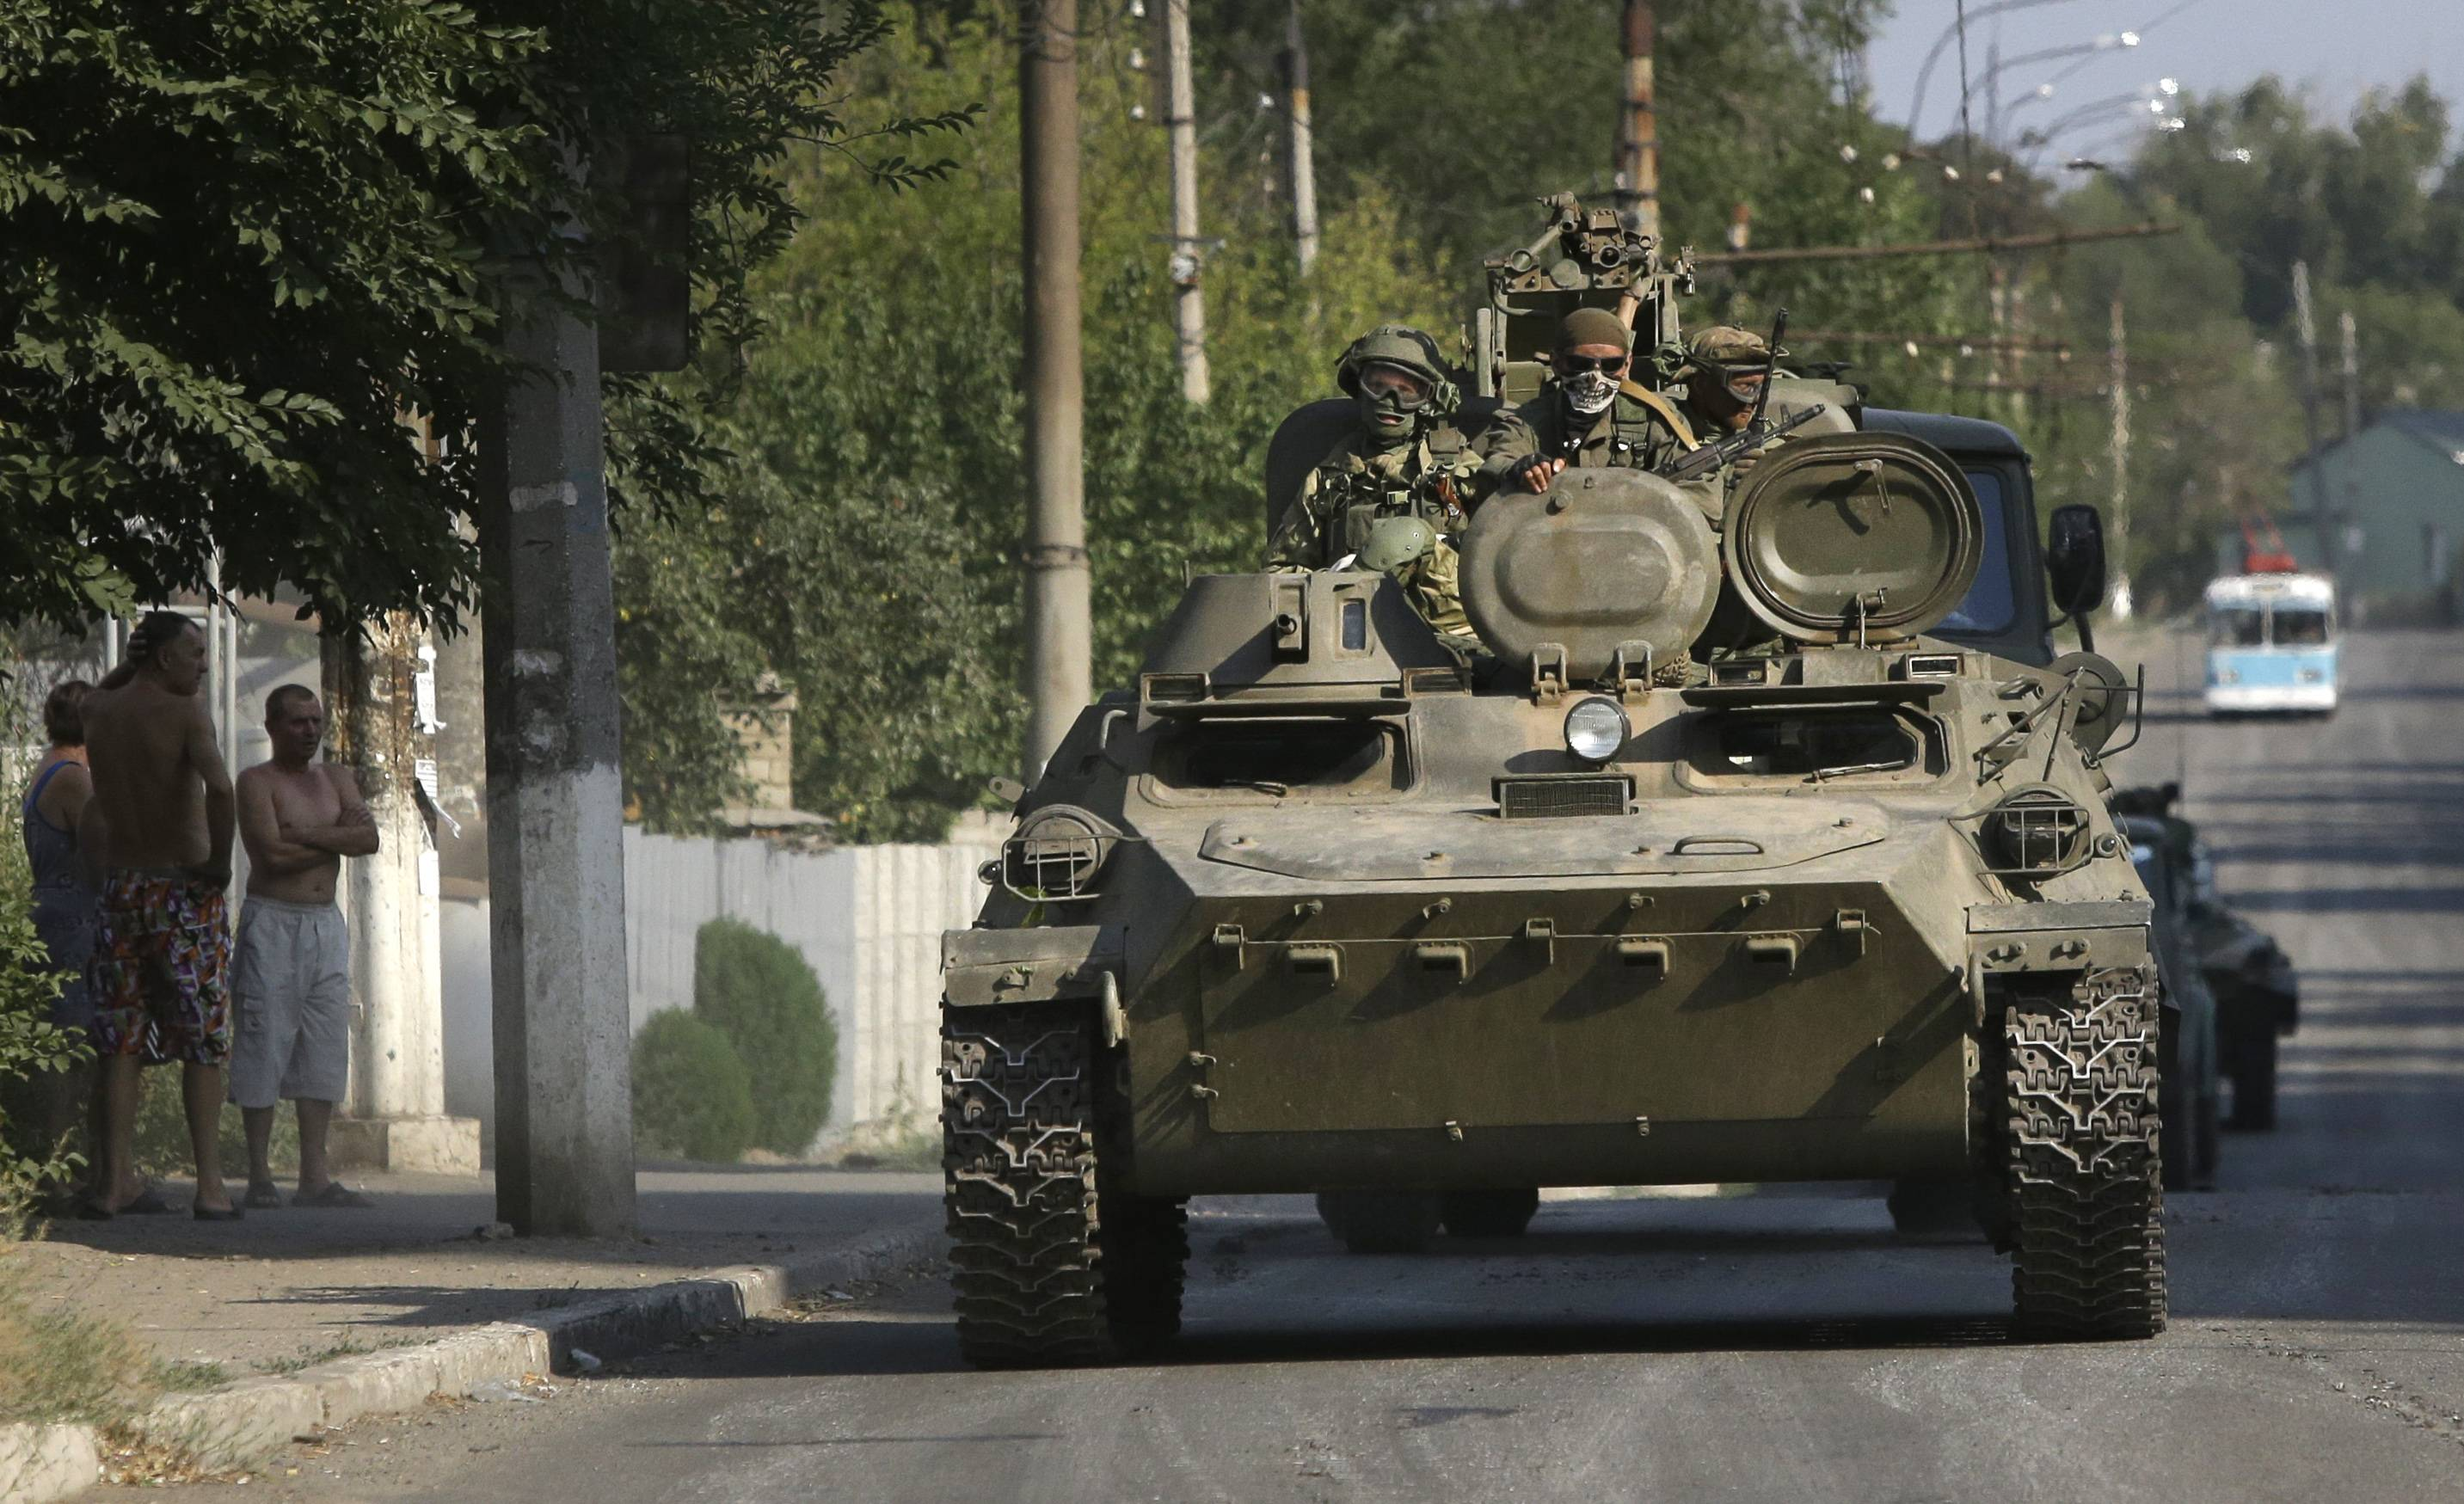 Ukraine says troops entered rebel-held city